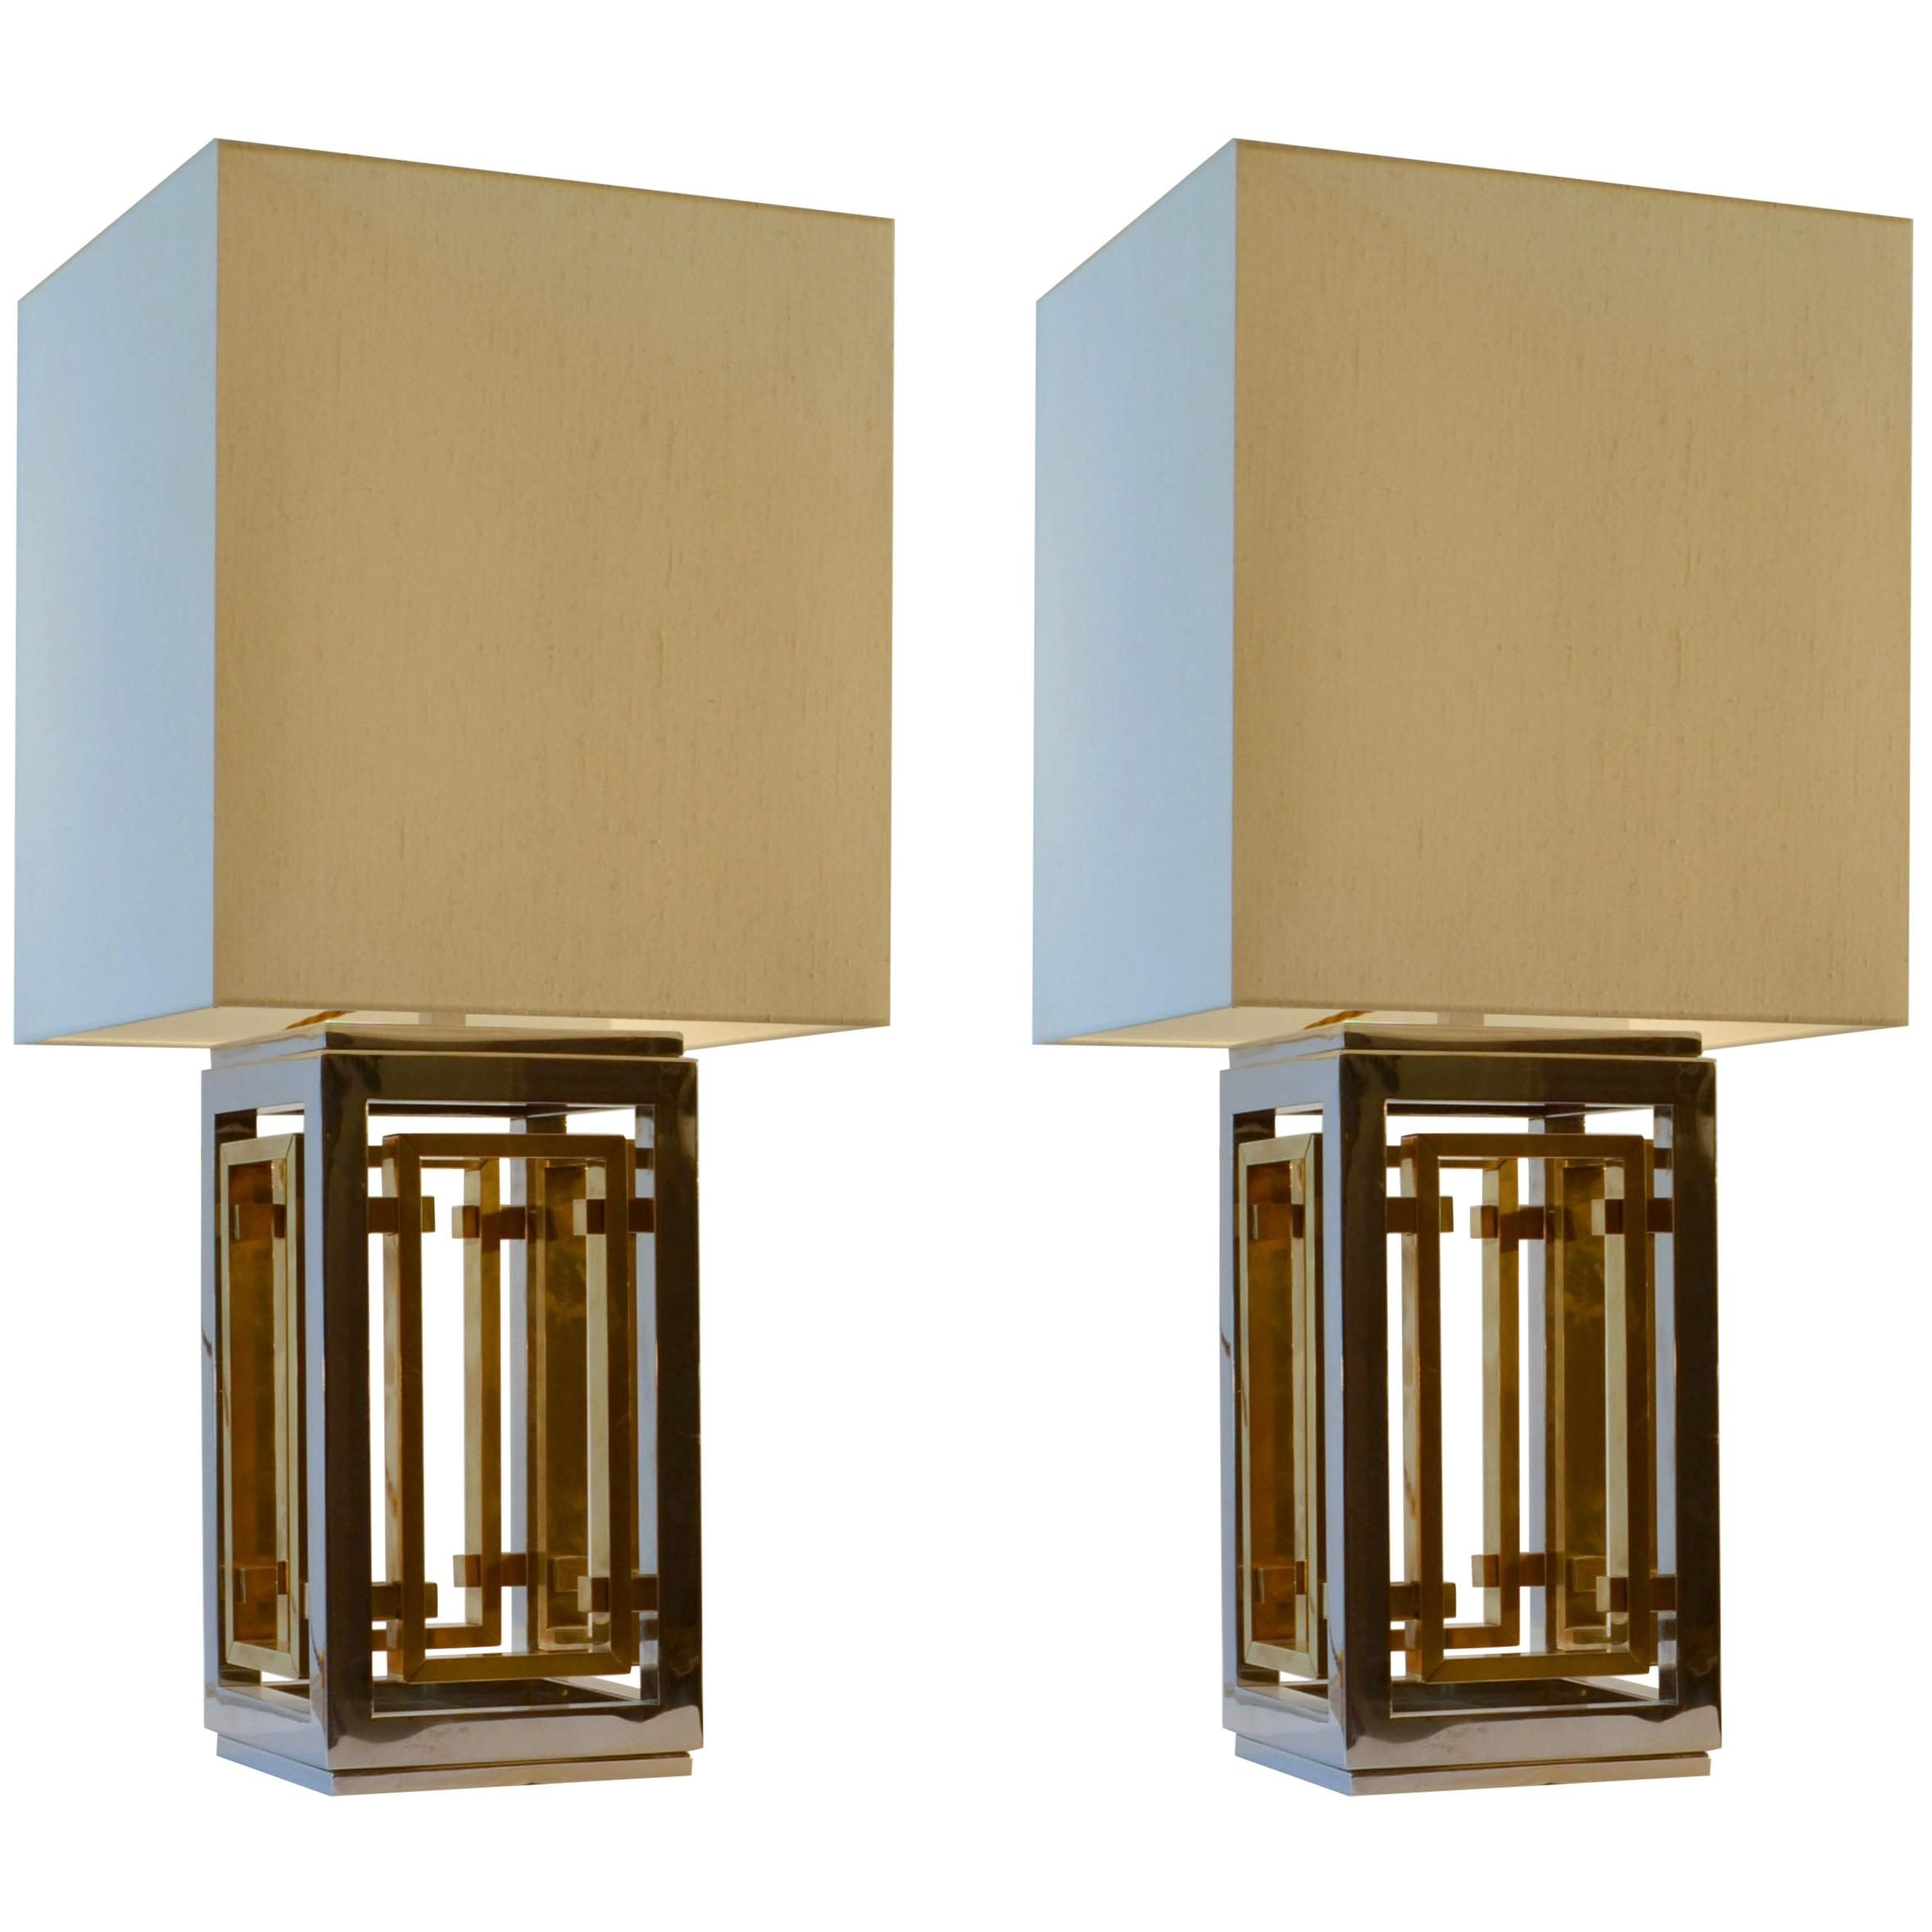 Picture of: Romeo Rega Pair Of Table Lamps Chrome And Brass With Cream Square Shades By Romeo Rega